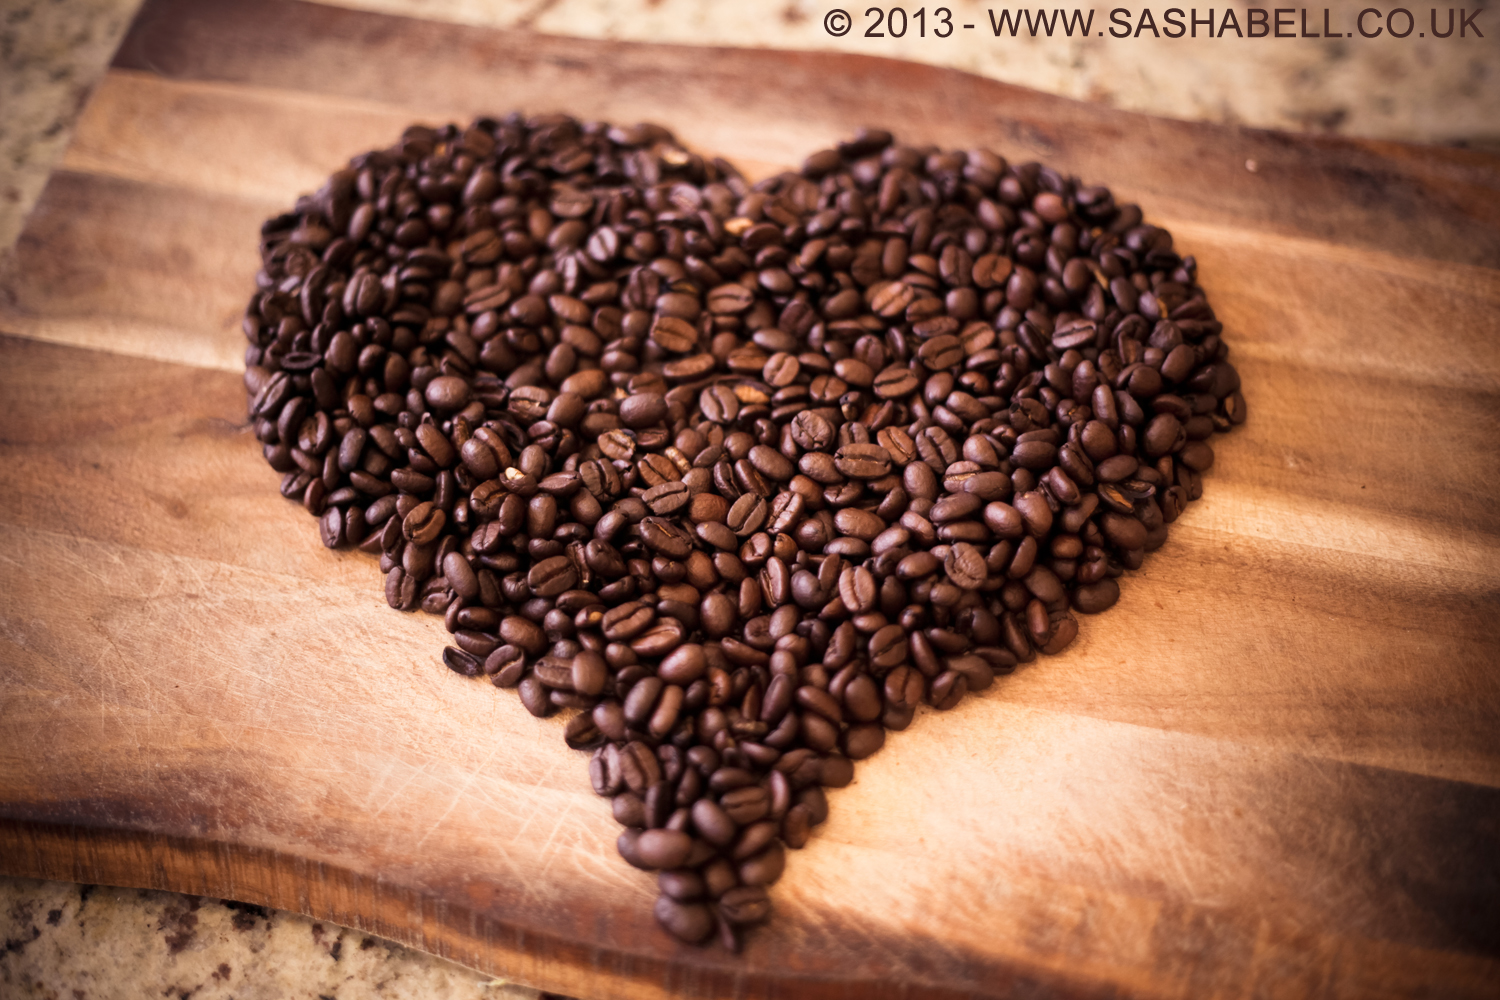 Coffee Beans In Heart Shape – Day 141/365